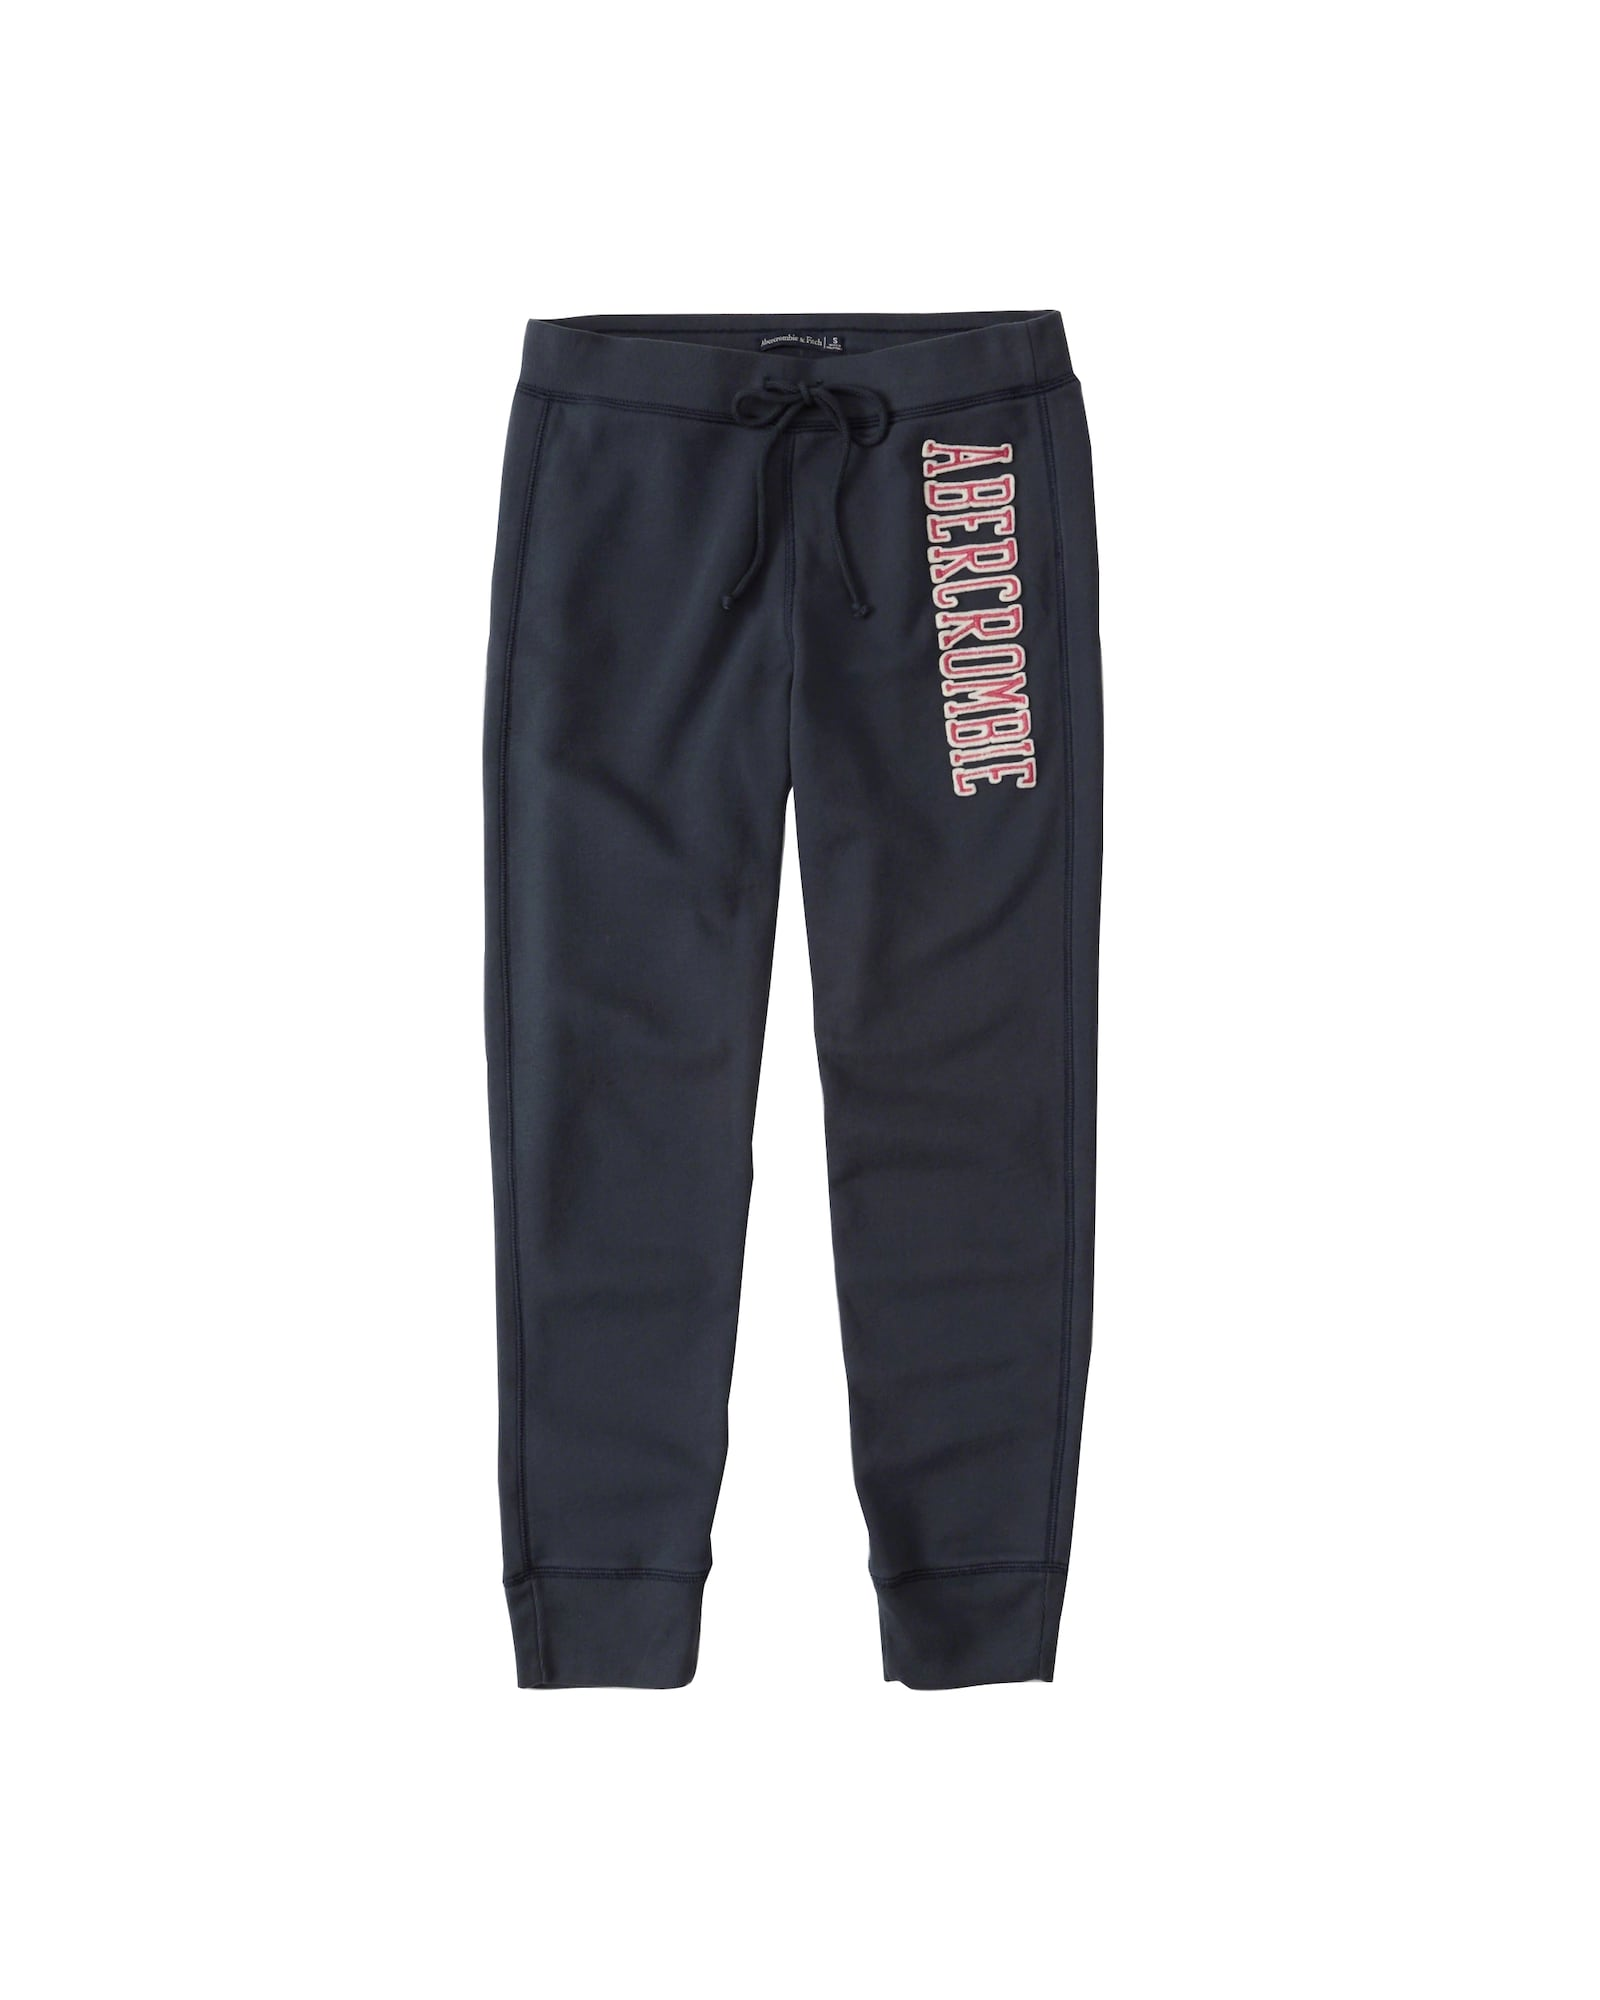 Abercrombie & Fitch, Dames Broek 'SEASONAL CORE JOGGER', navy